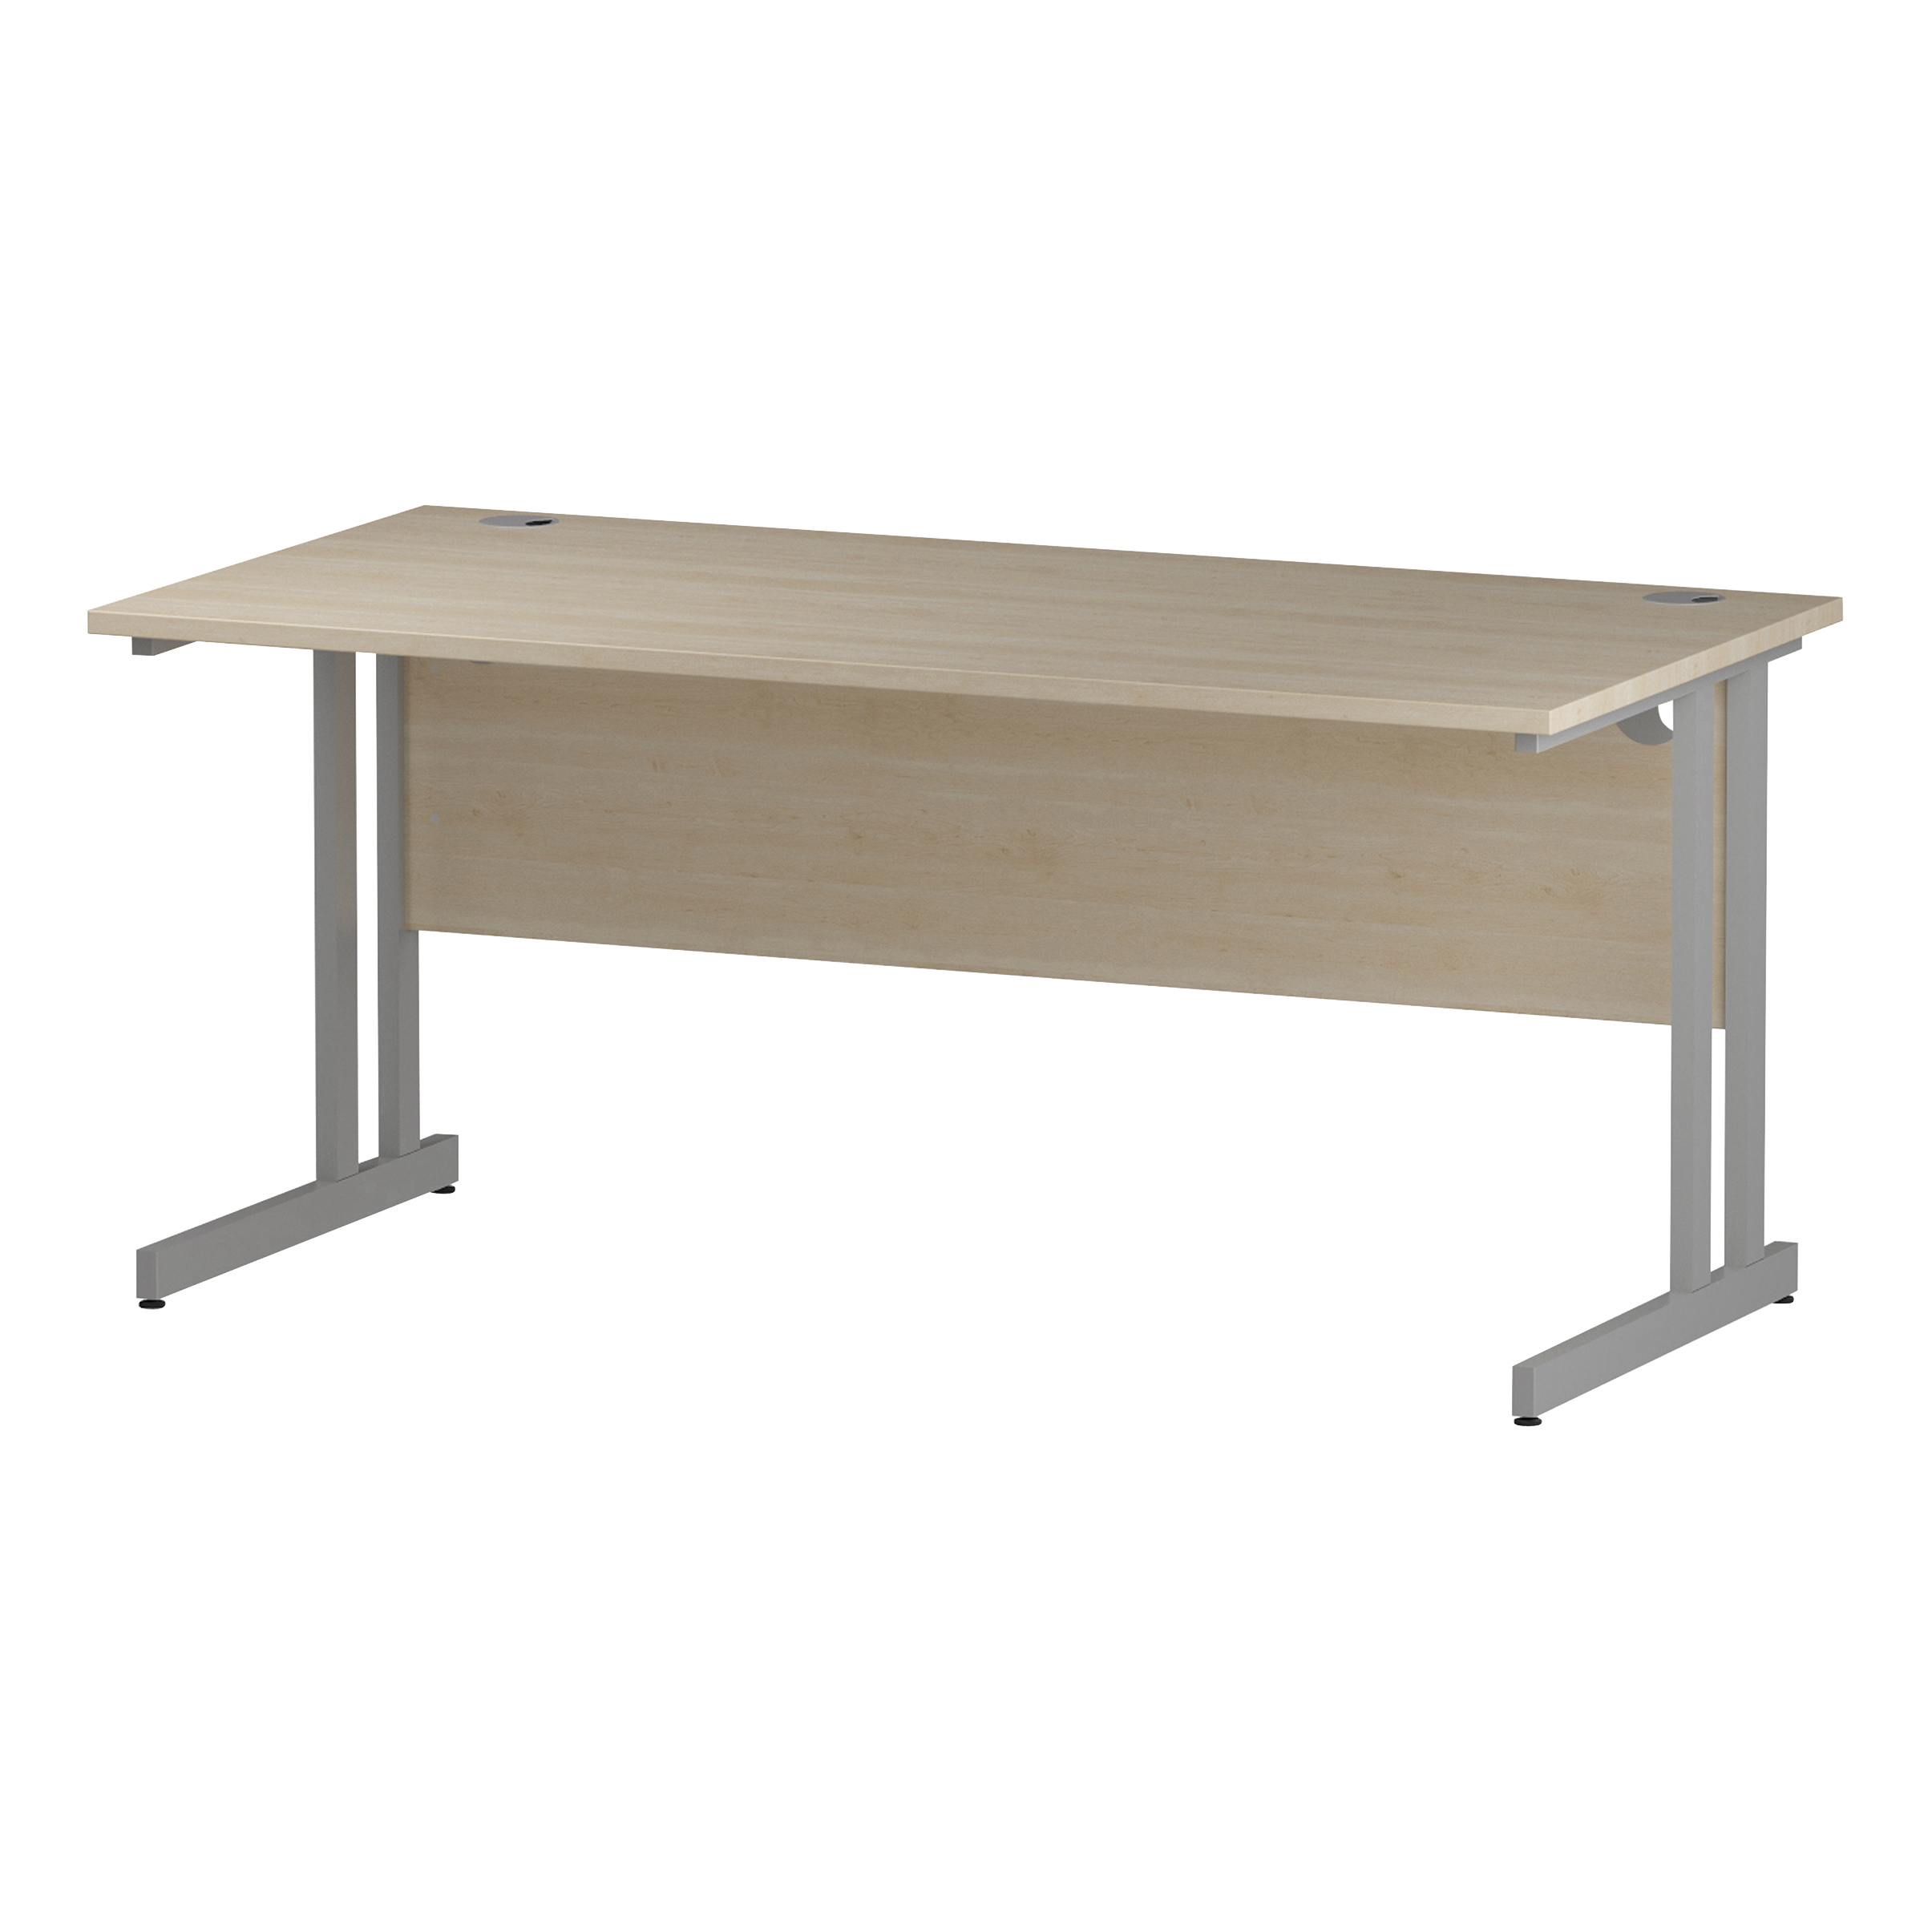 Trexus Rectangular Desk Cantilever Leg 1600mm Maple